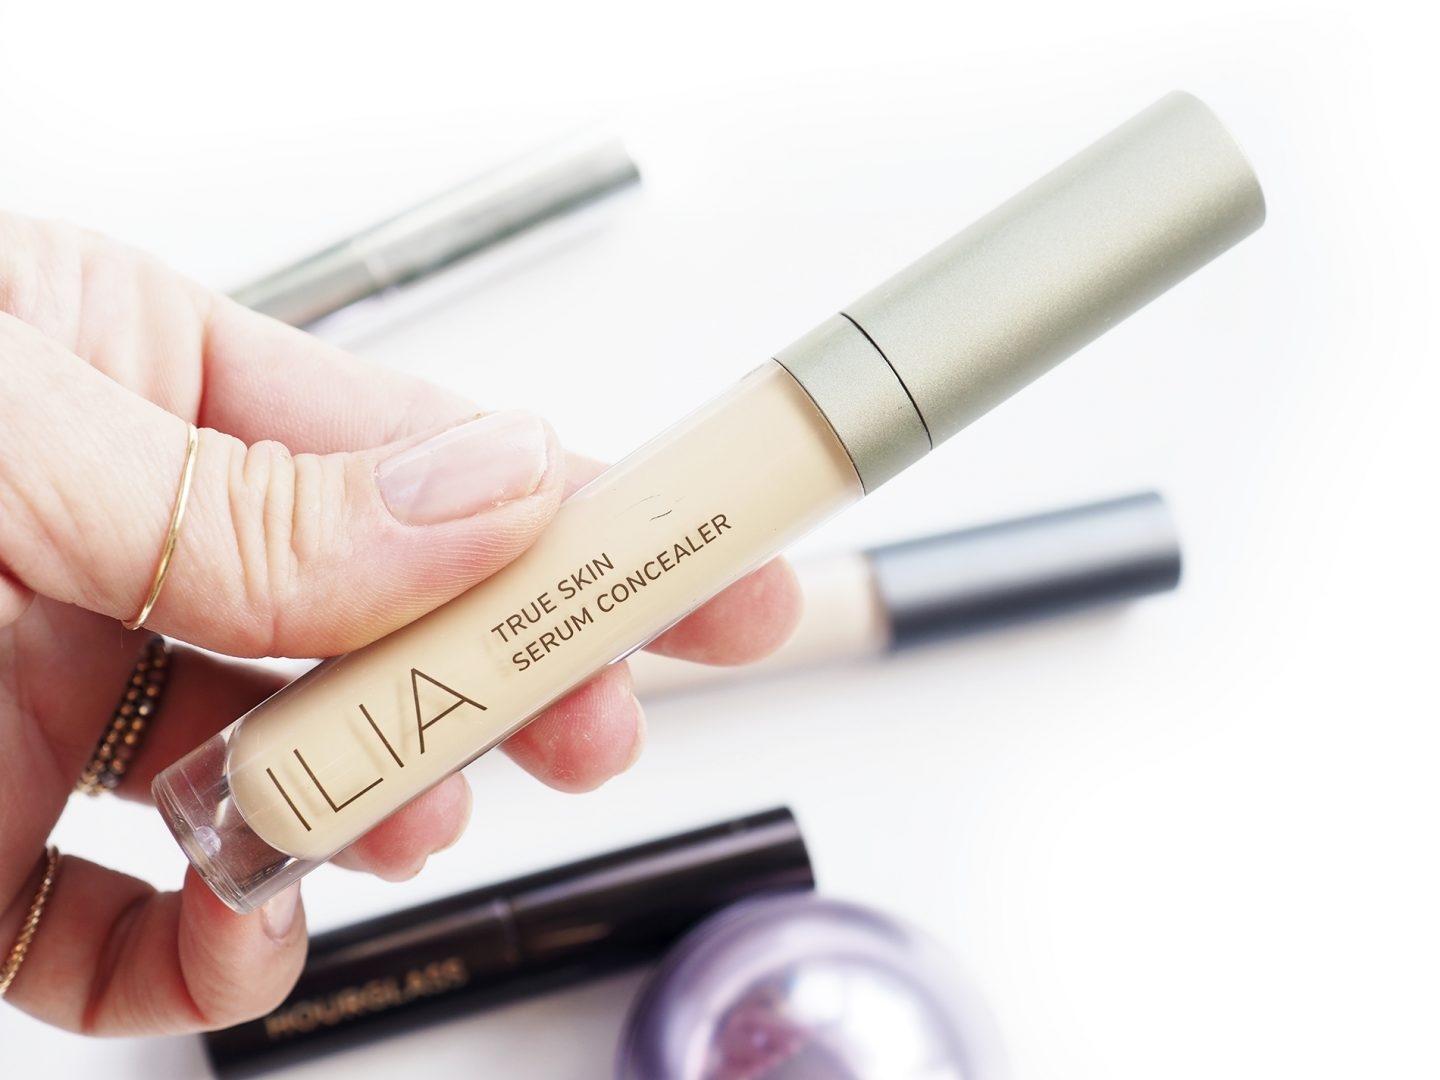 Ilia Beauty True Skin Serum Concealer